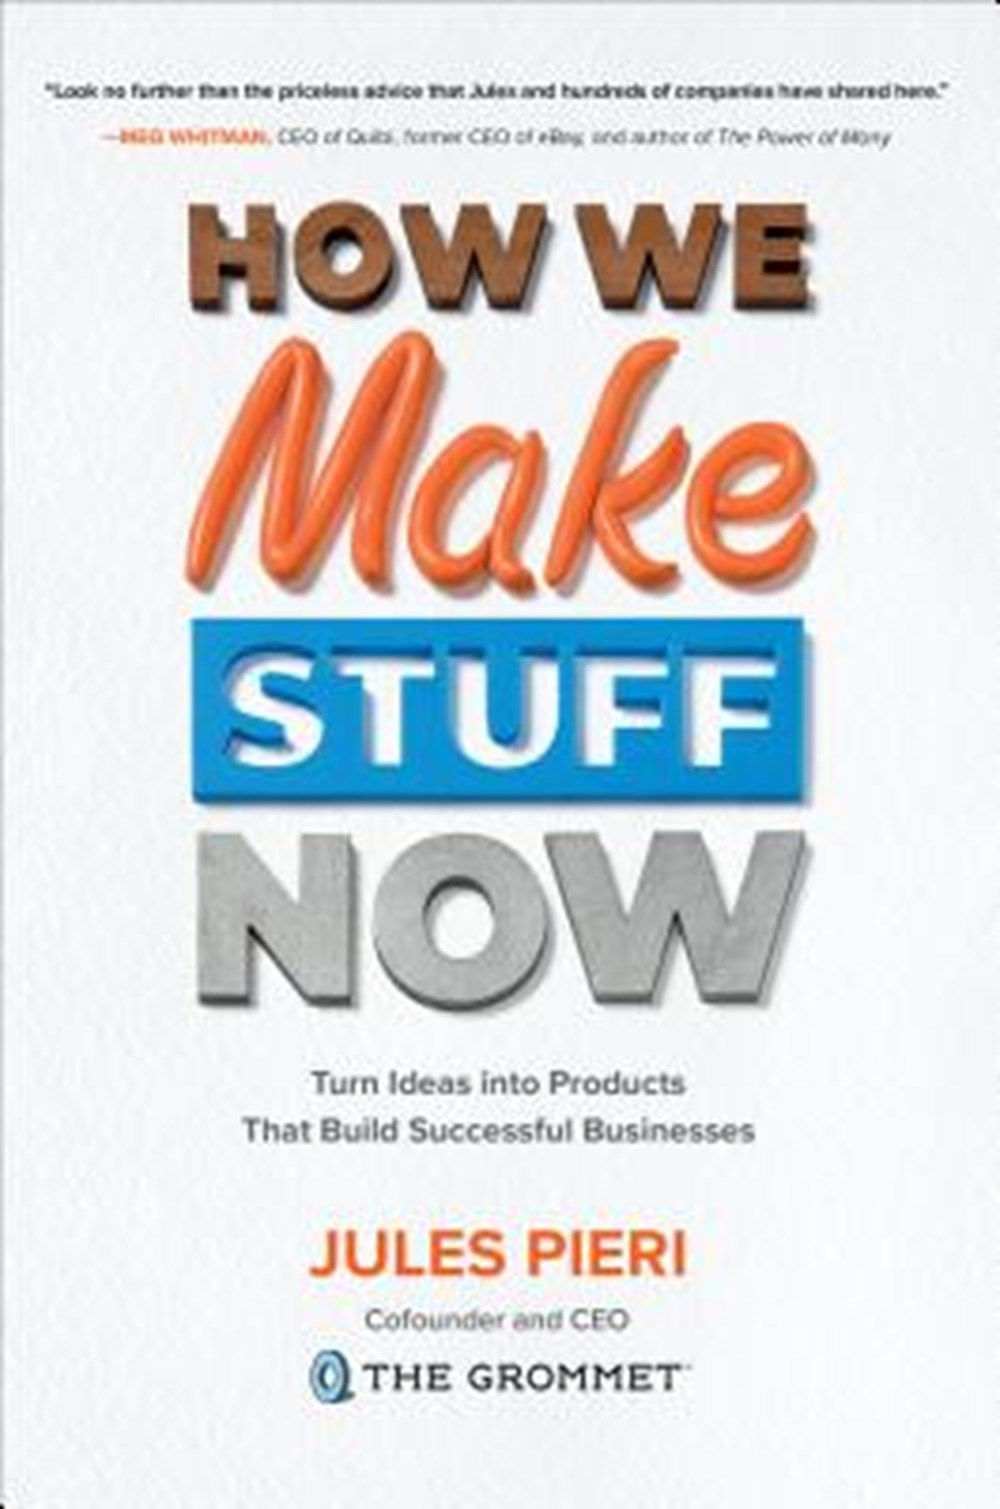 How We Make Stuff Now Turn Ideas Into Products That Build Successful Businesses